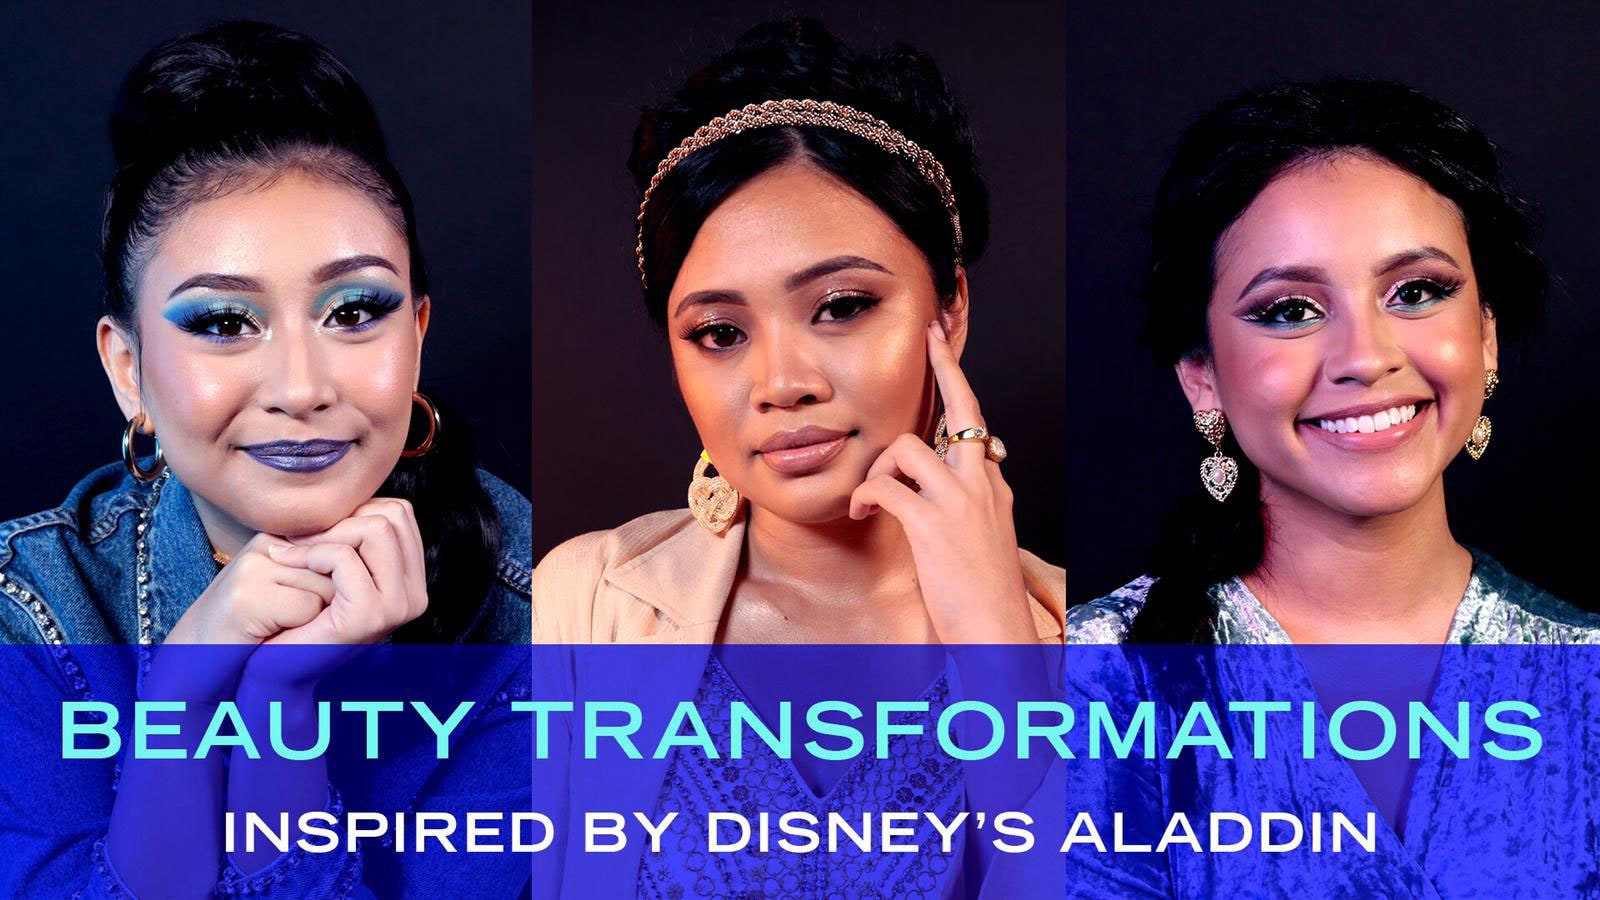 3 Girls, 3 Beauty Looks Inspired By Disney's Aladdin